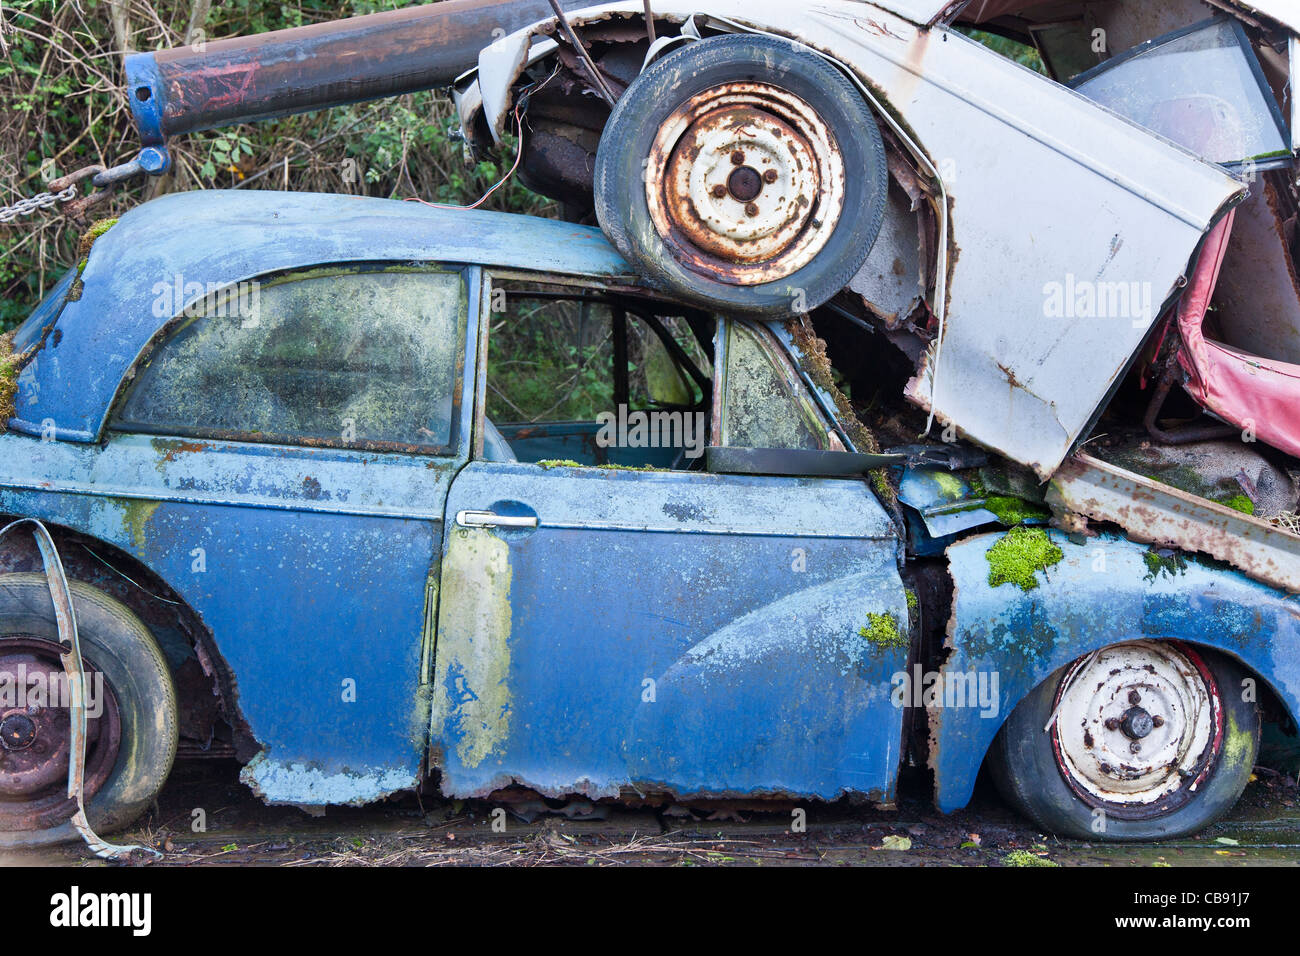 Old Morris Minor car with moss growing on it, in the scrap yard - Stock Image